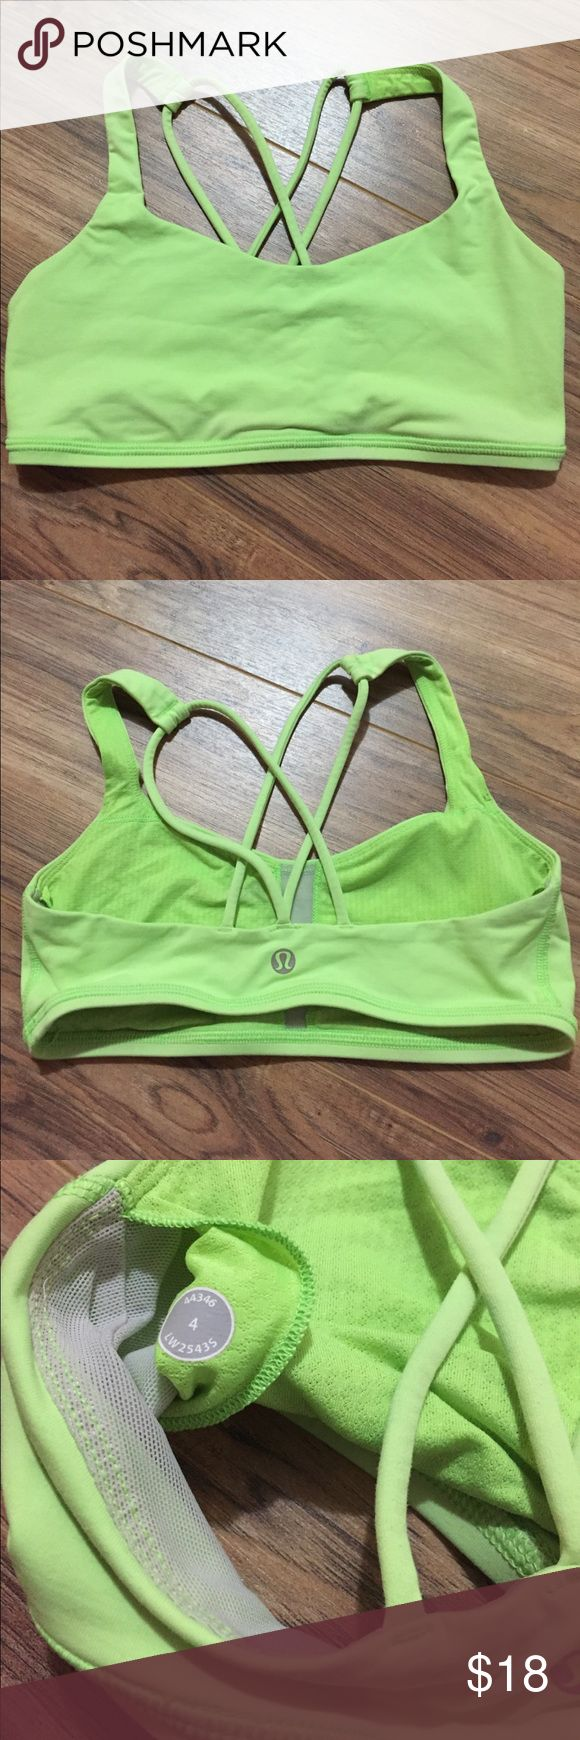 Lululemon lime green sports bra size 4 Used lime green sports bra, size 4, No pads, two straps in back, has two small stains in the front, this bra runs smaller. lululemon athletica Intimates & Sleepwear Bras